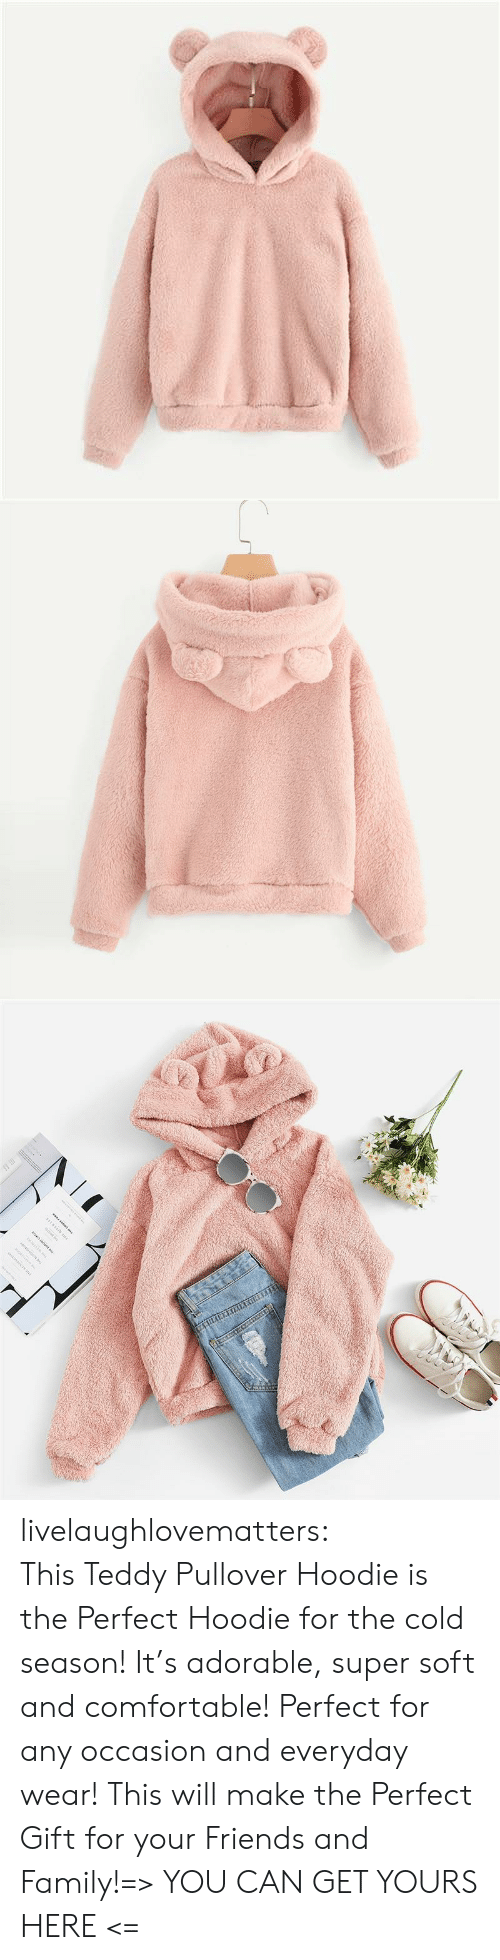 Teddy: www.w. livelaughlovematters:  This Teddy Pullover Hoodie is the Perfect Hoodie for the cold season! It's adorable, super soft and comfortable! Perfect for any occasion and everyday wear! This will make the Perfect Gift for your Friends and Family!=> YOU CAN GET YOURS HERE <=